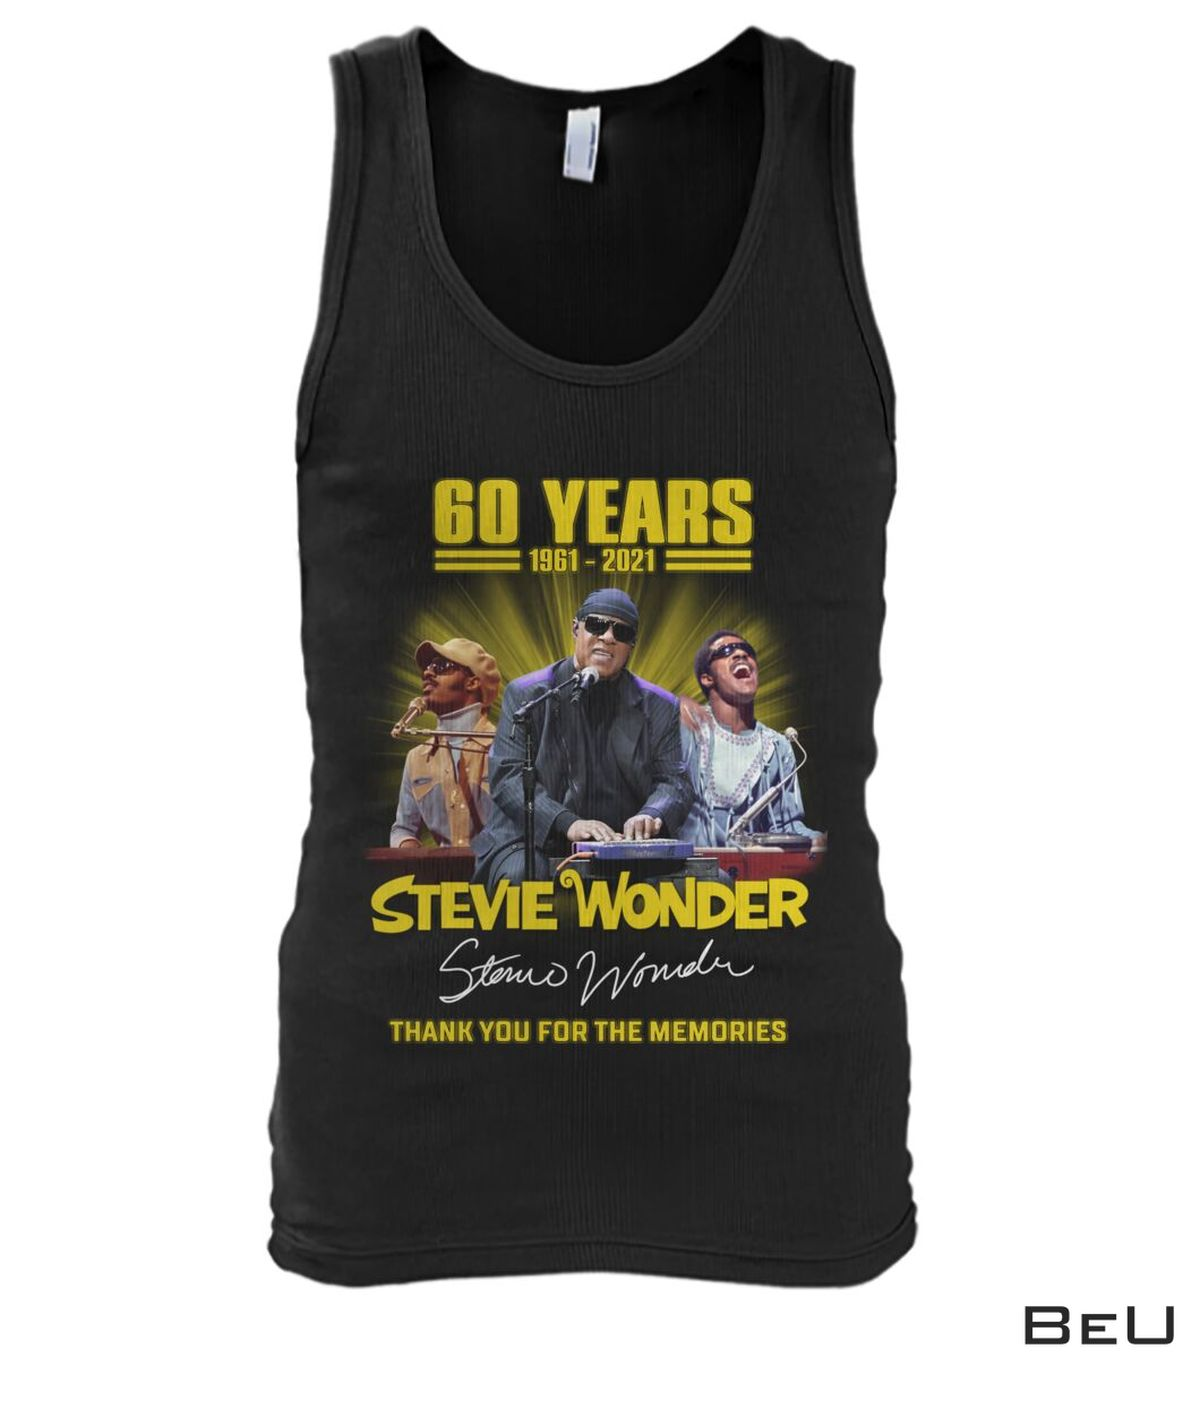 Discount 60 Years Stevie Wonder Thank You For The Memories Shirt, hoodie, tank top